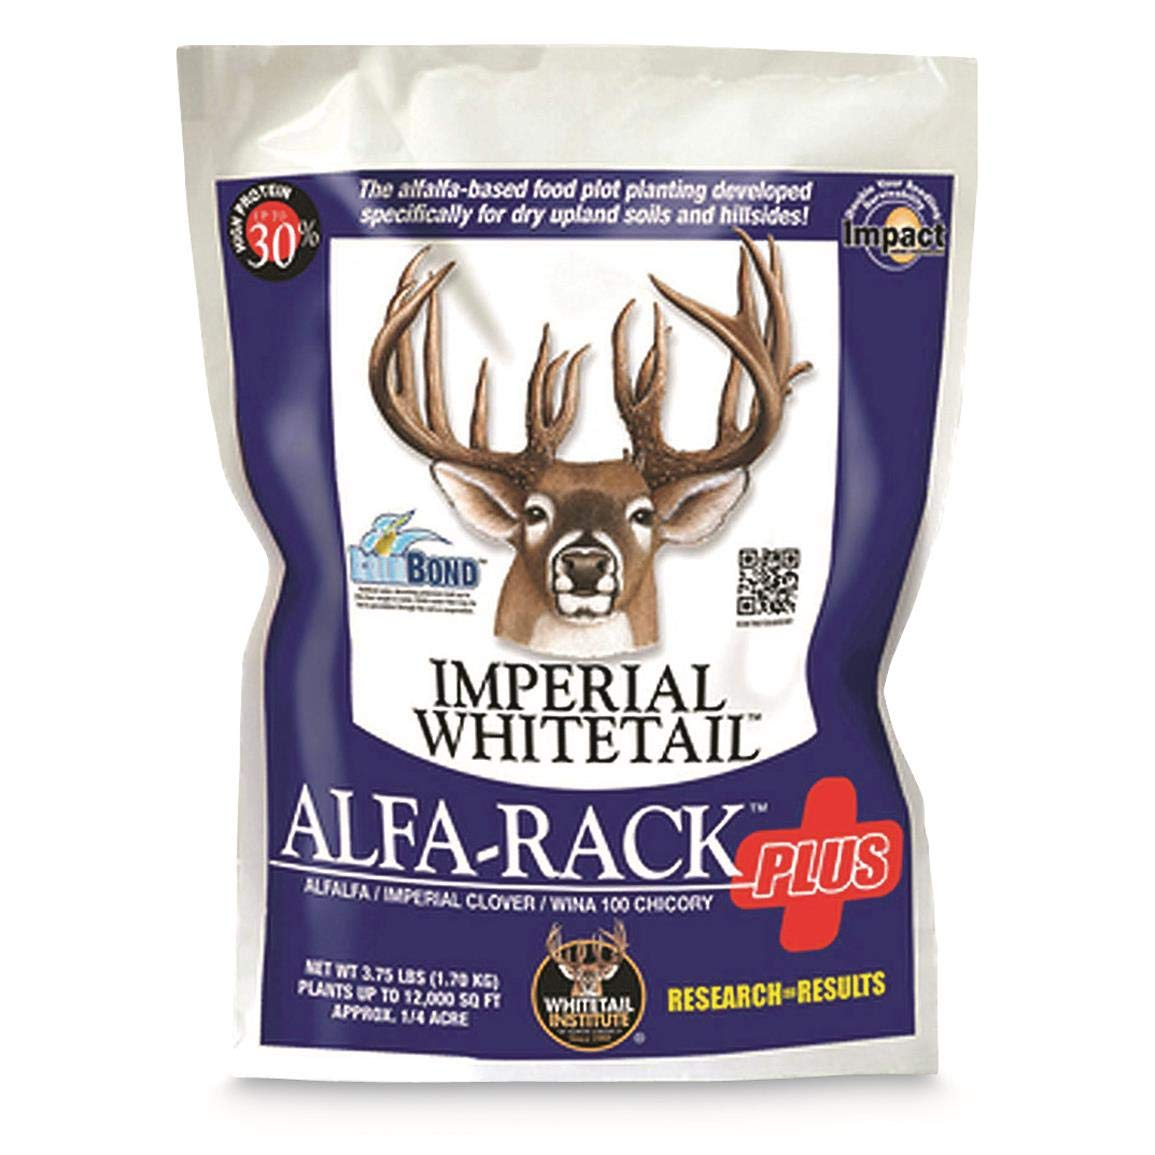 Imperial Whitetail Alfa-Rack Plus, 16.5 LB by Whitetail Institute